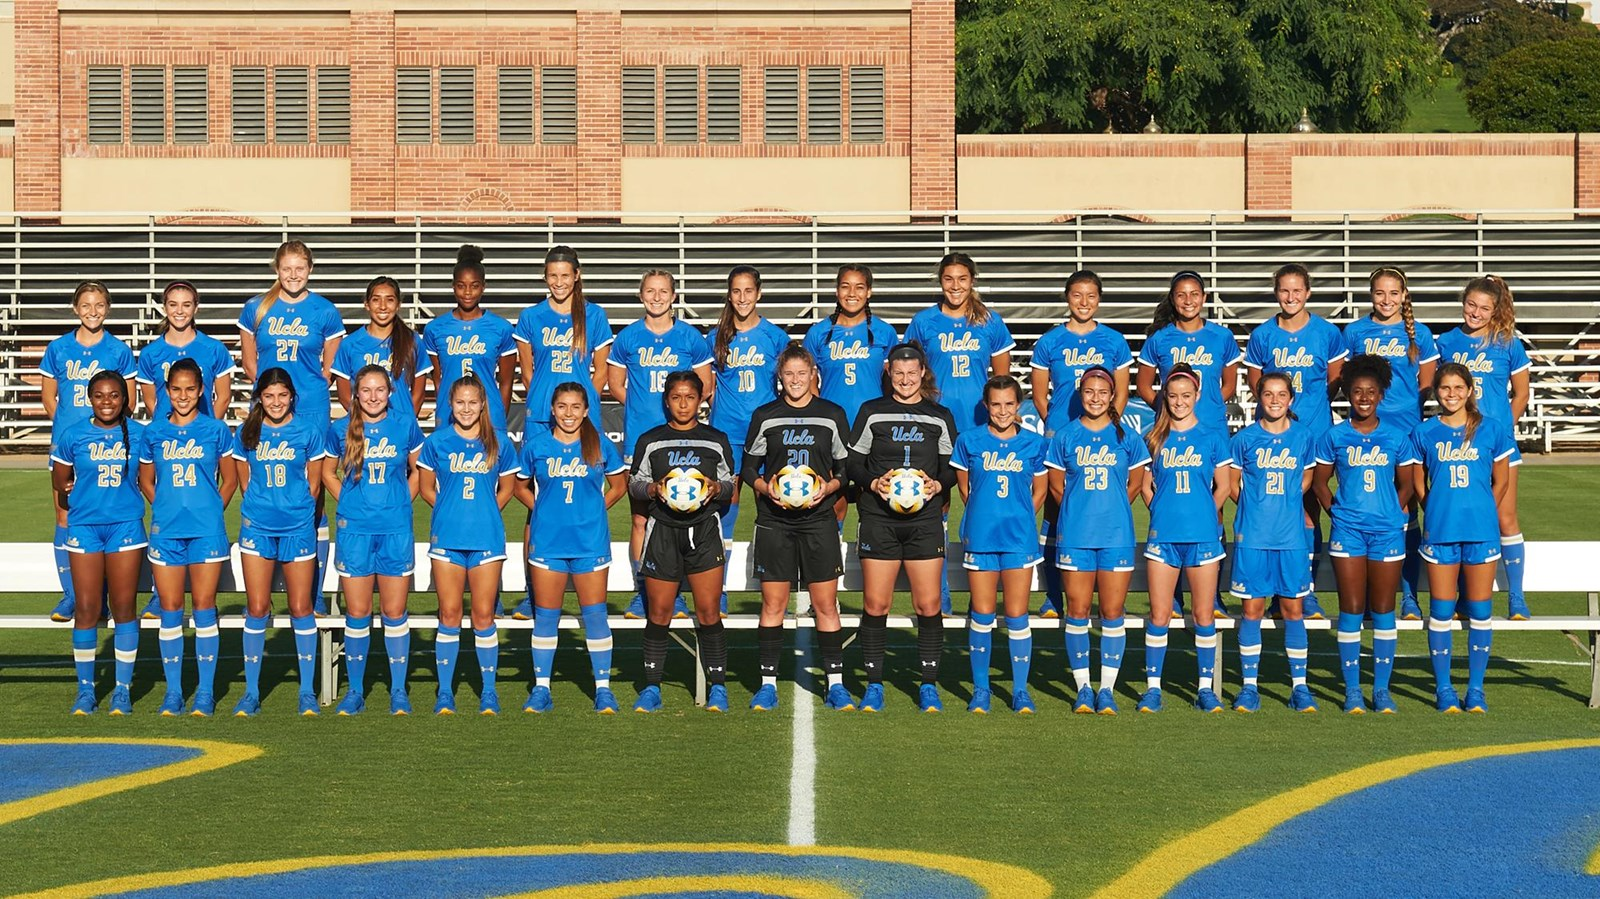 894572cd9ea 2018 Women's Soccer Roster - UCLA